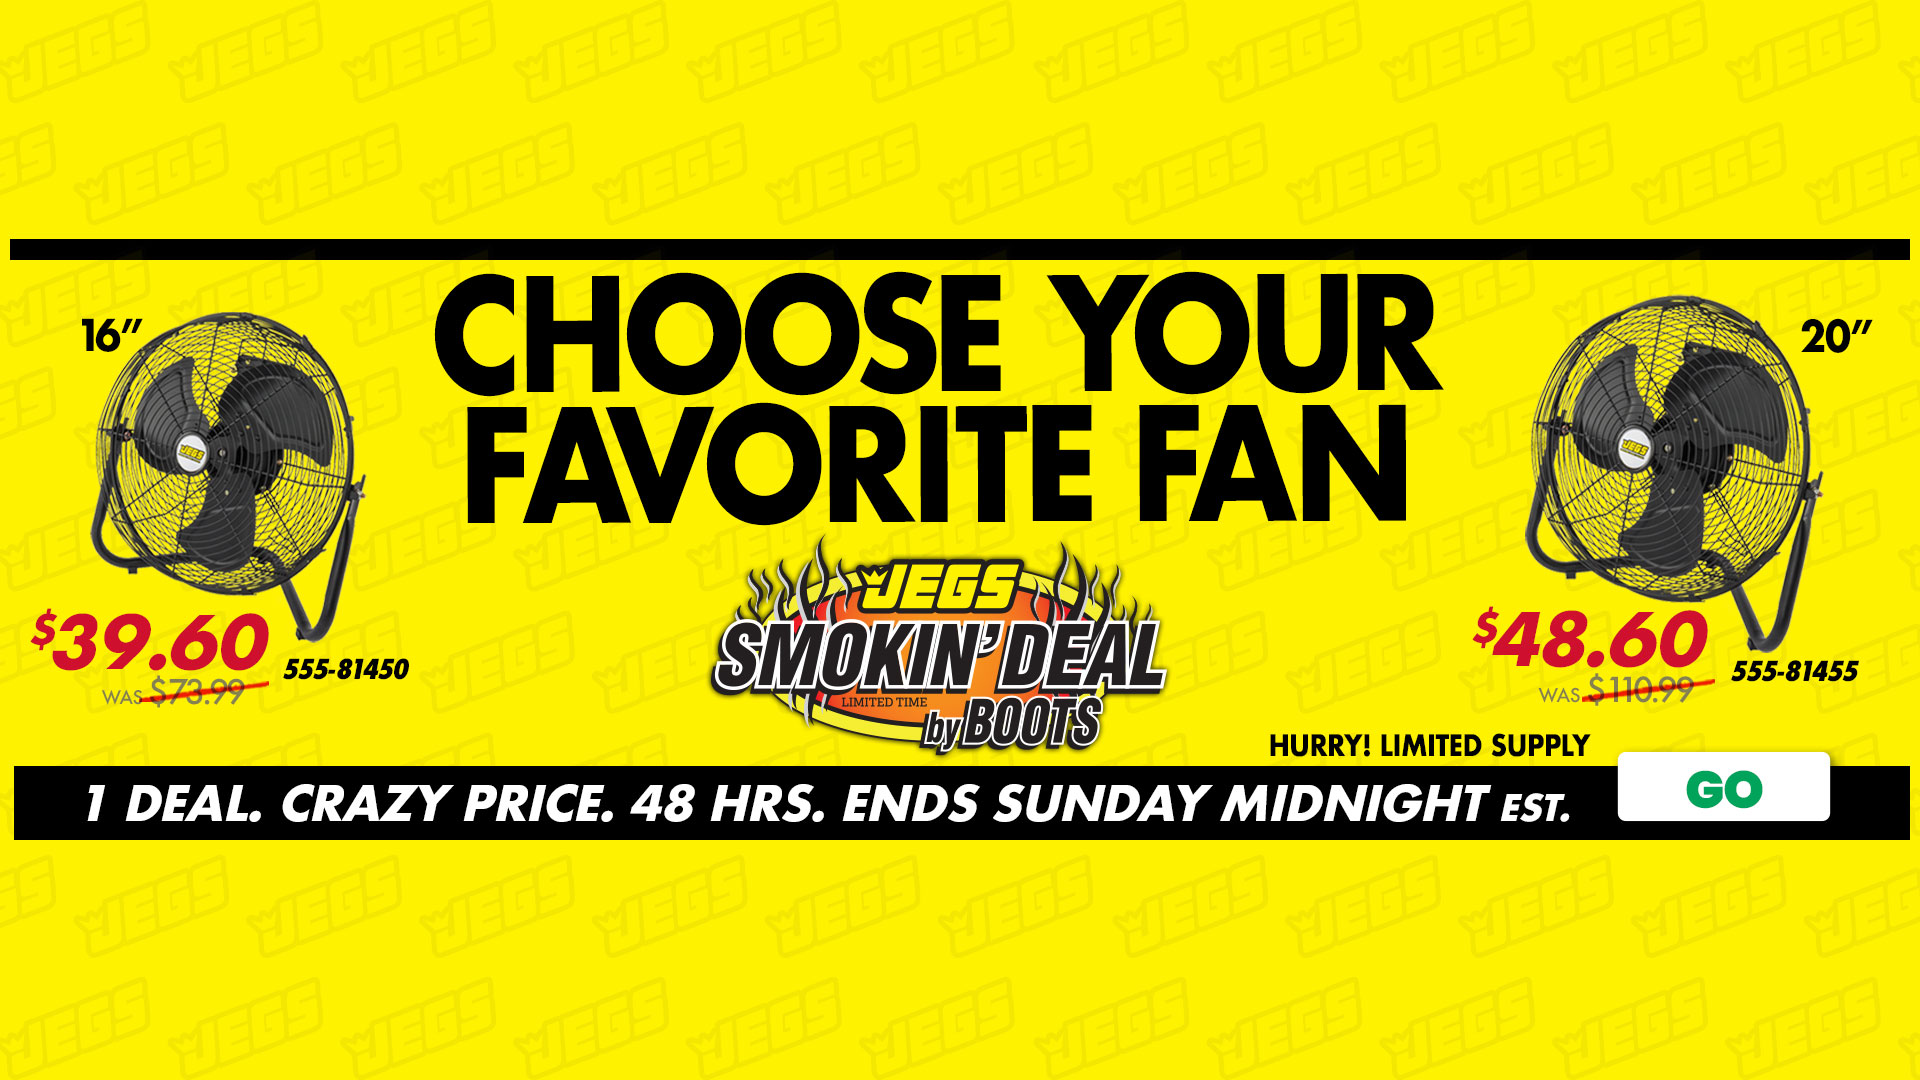 JEGS Smokin' Deal - JEGS 2 Shop Fans - 2 Deals. Crazy Price. 2-days Ends Sunday Midnight EST.